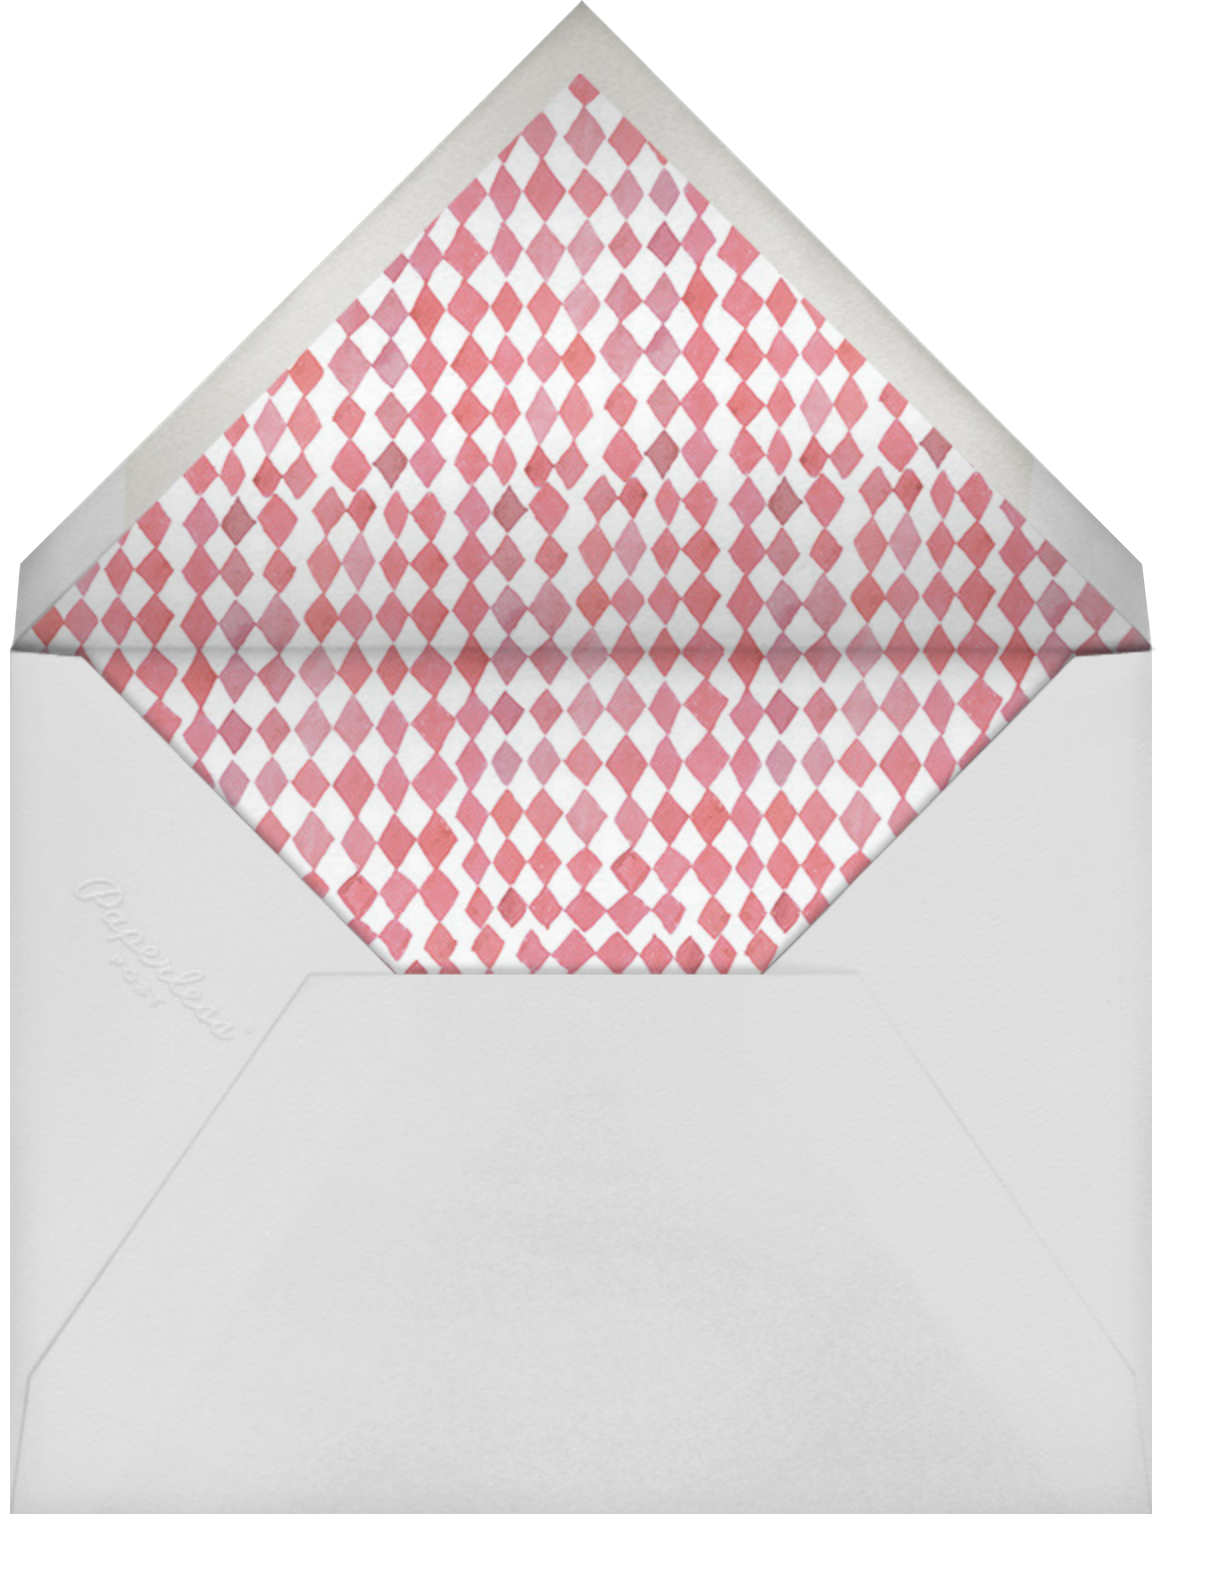 Holiday Hors d'oeuvres - Happy Menocal - Winter entertaining - envelope back